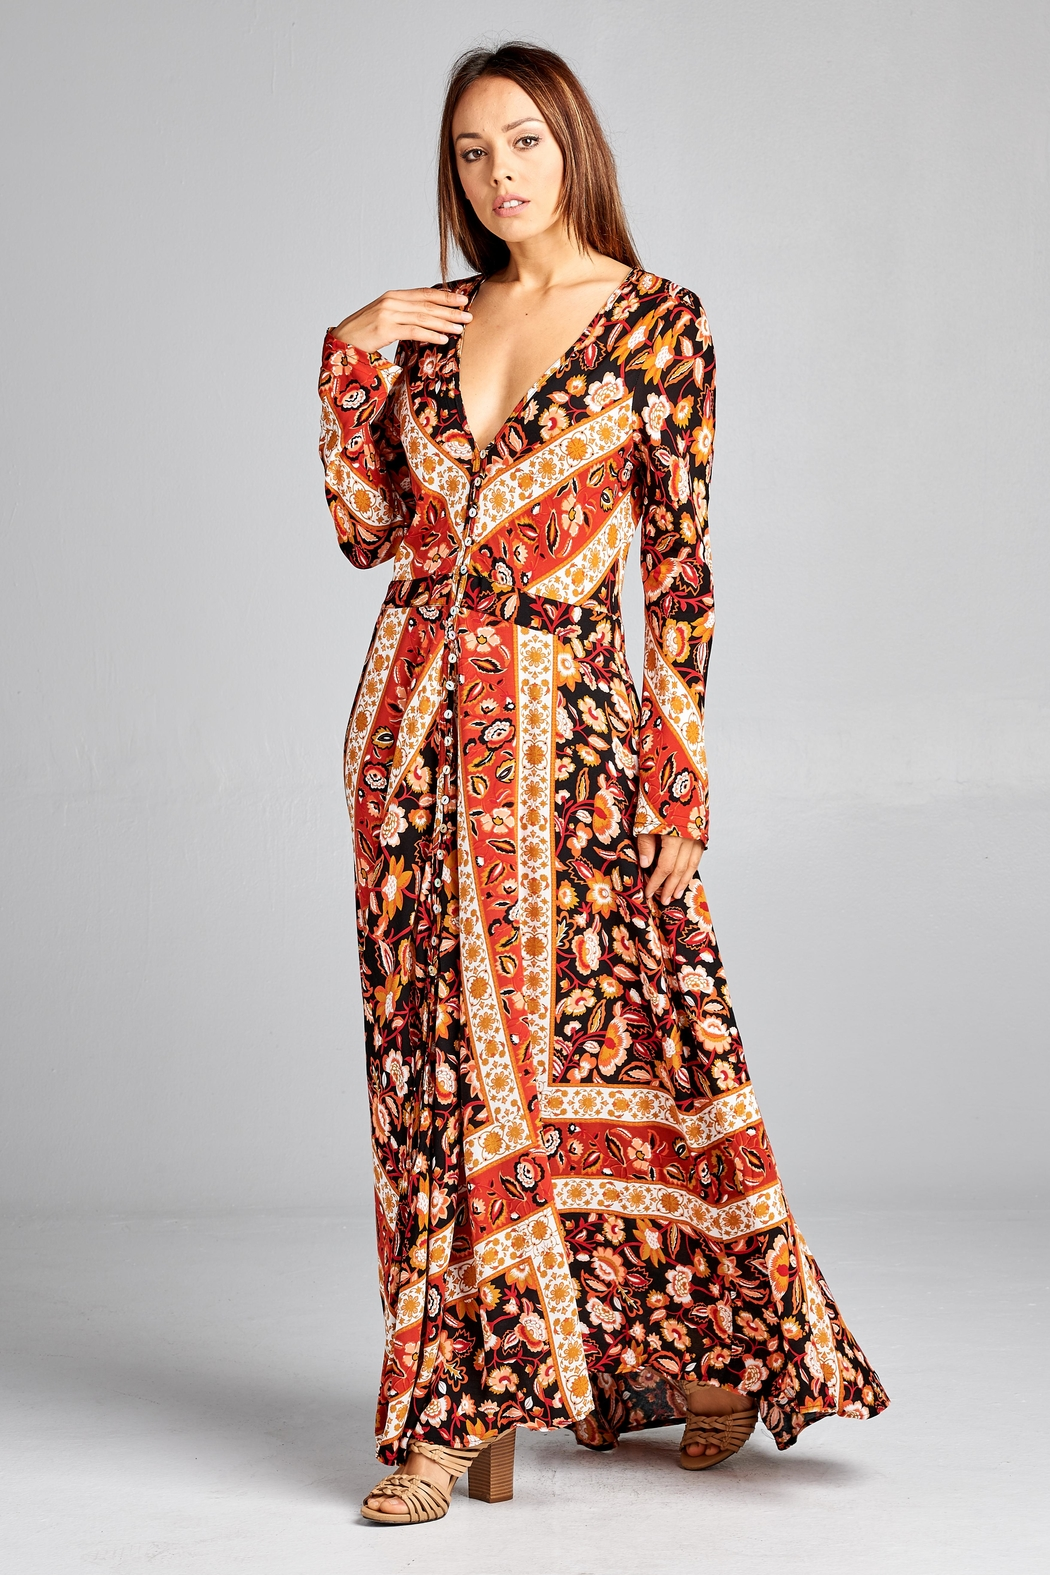 Racine Floral Dreamy-Romantic Maxi-Dress - Main Image